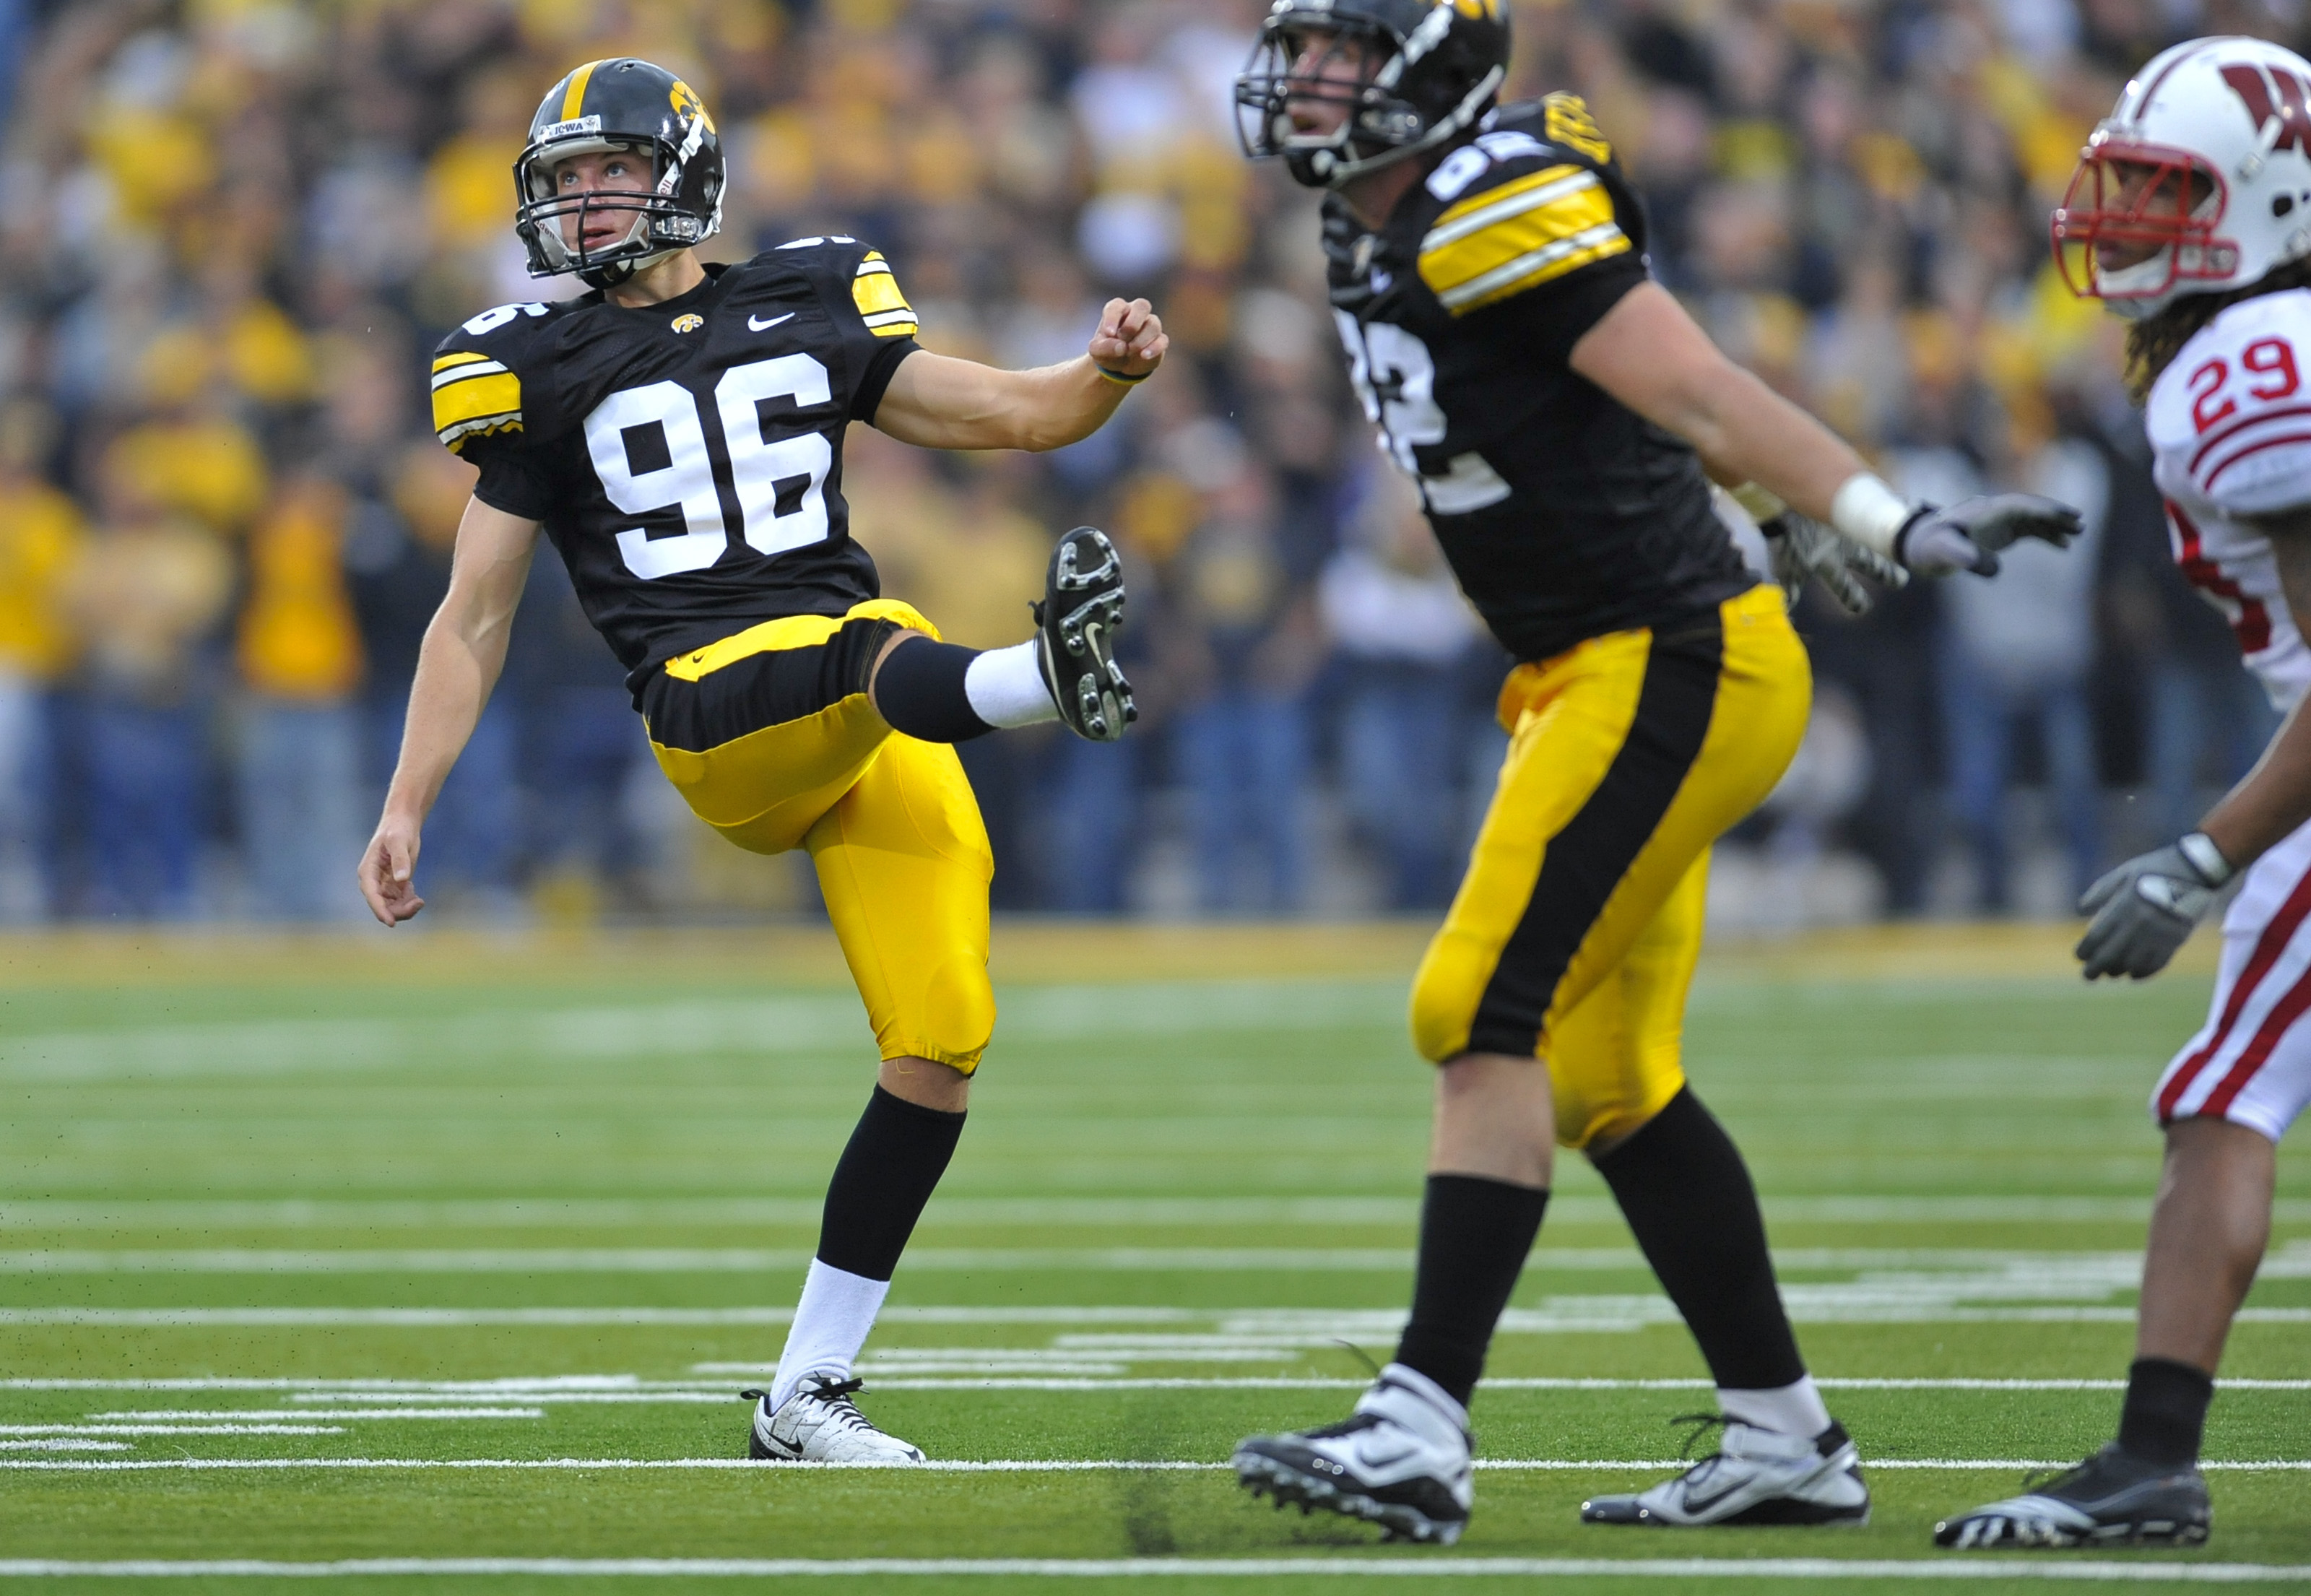 IOWA CITY, IA - OCTOBER 23- Kicker Mike Meyer #96 of the University of Iowa Hawkeyes watches his kick go through the uprights to score a field goal against the Wisconsin Badgers during the second half of play at Kinnick Stadium on October 23, 2010 in Iowa